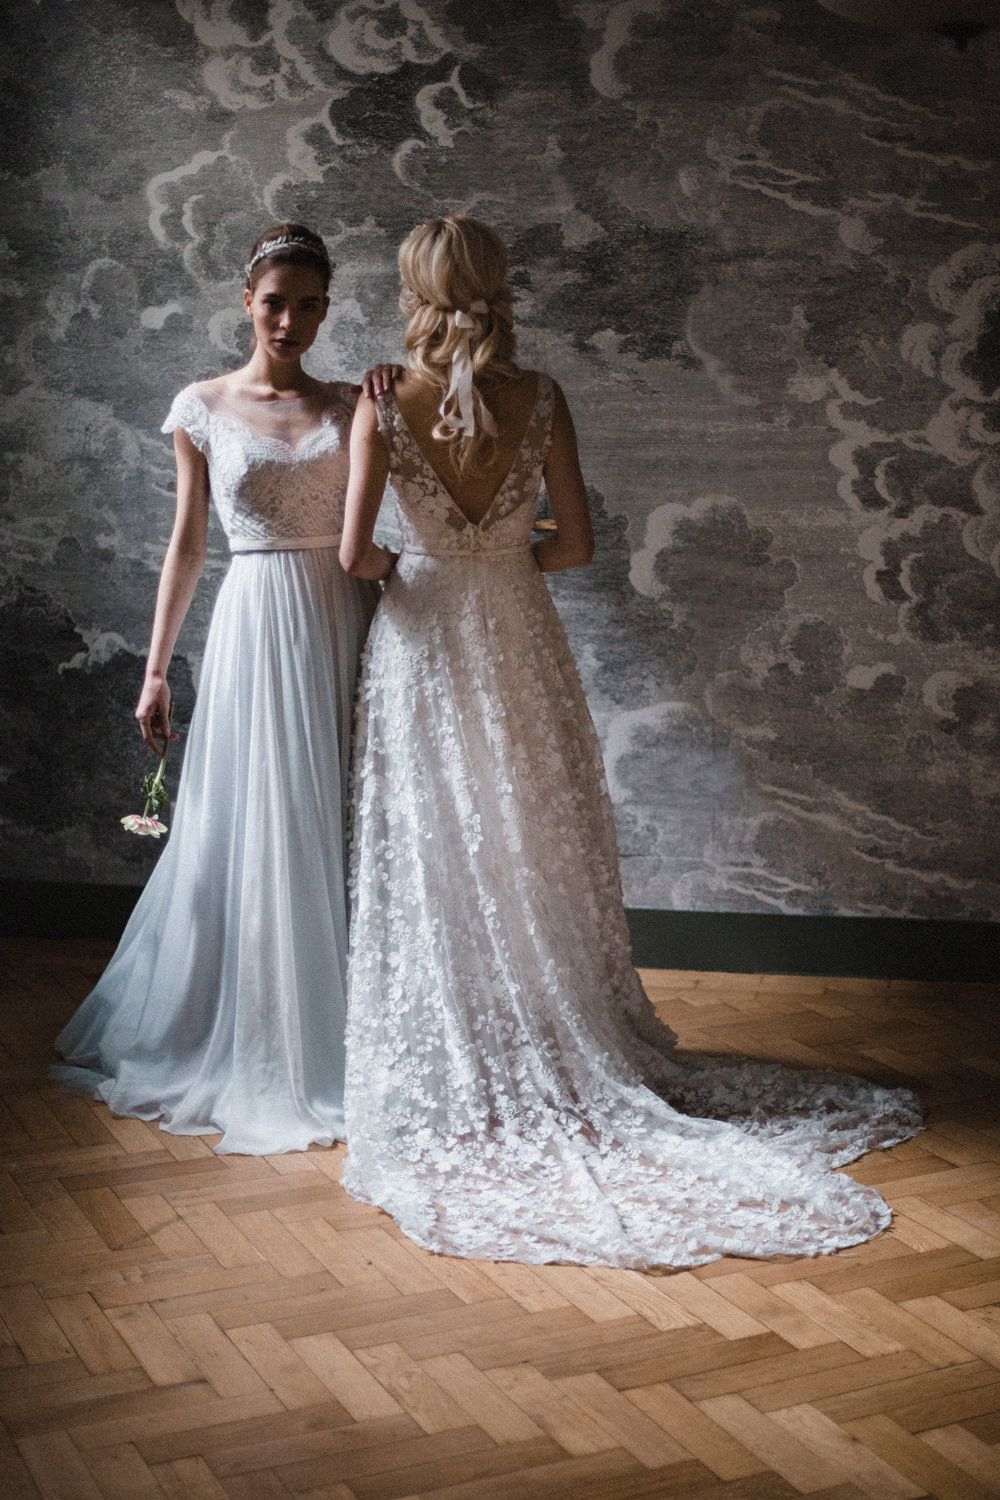 Bride Bridal Dress Gown Naomi Neoh Tulle Train Whimsical Elegant Wedding Ideas Mandorla London